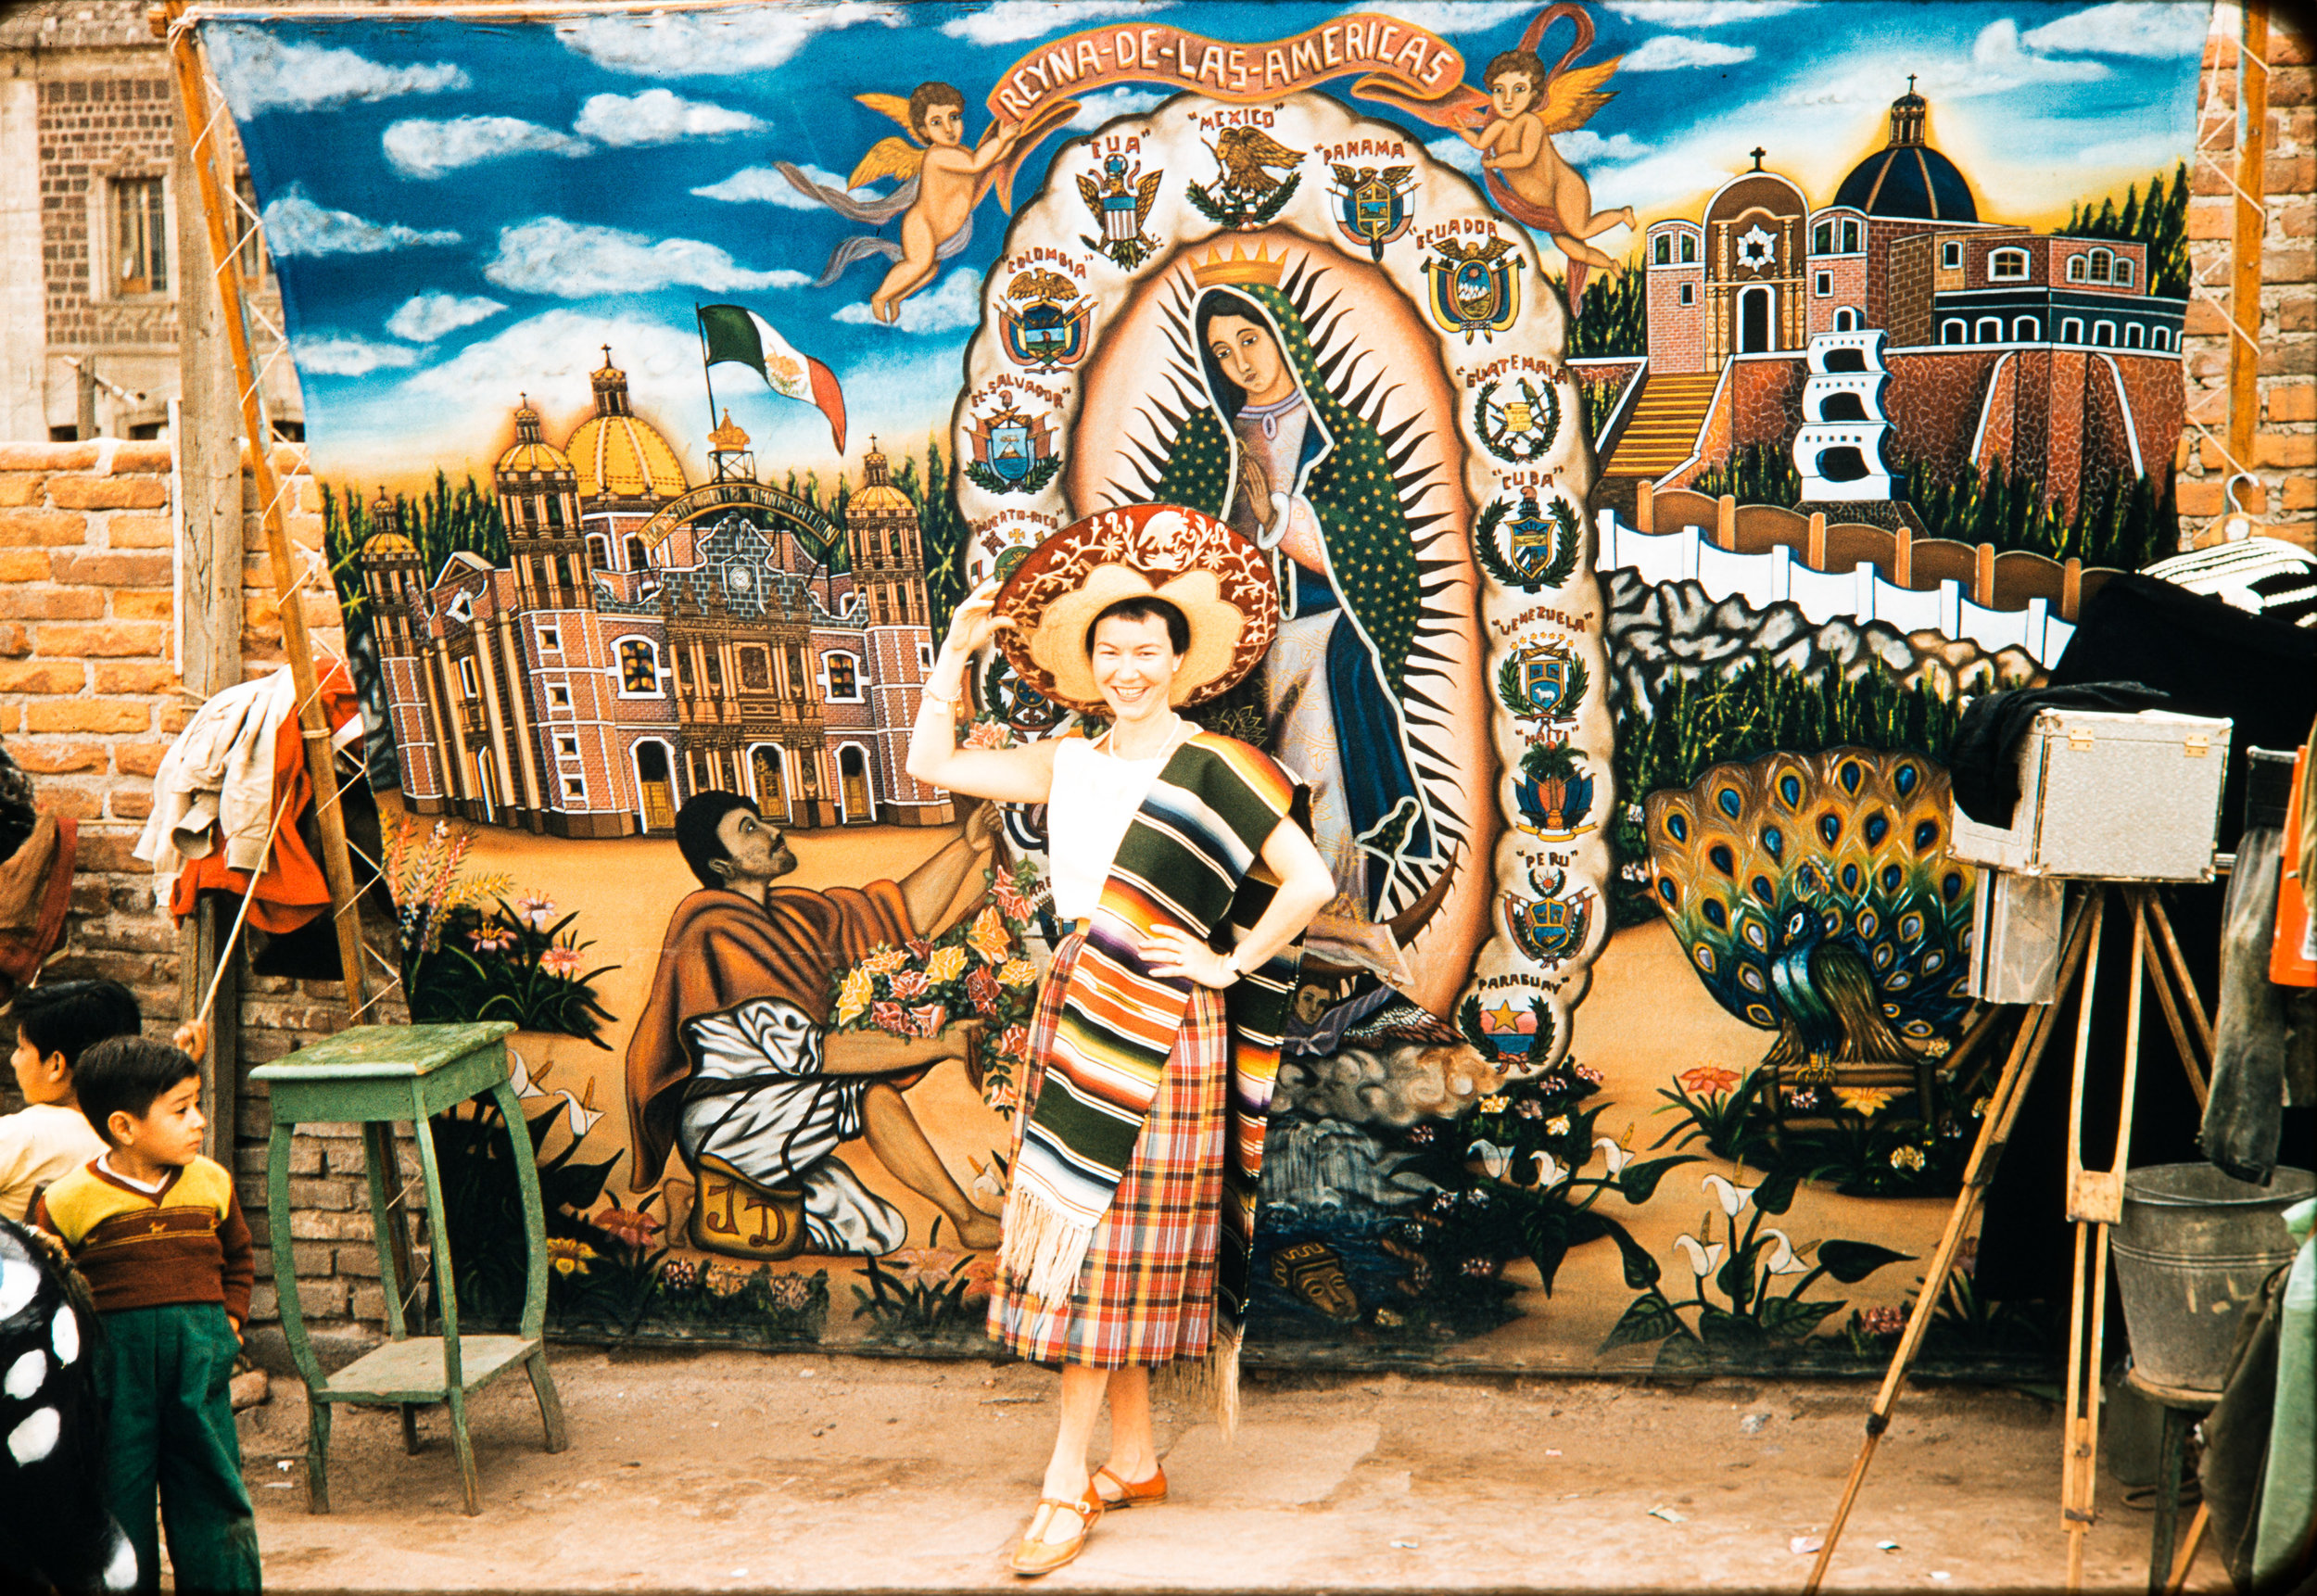 Eleanor Jacobs in Mexican garb, Mexico, 1957